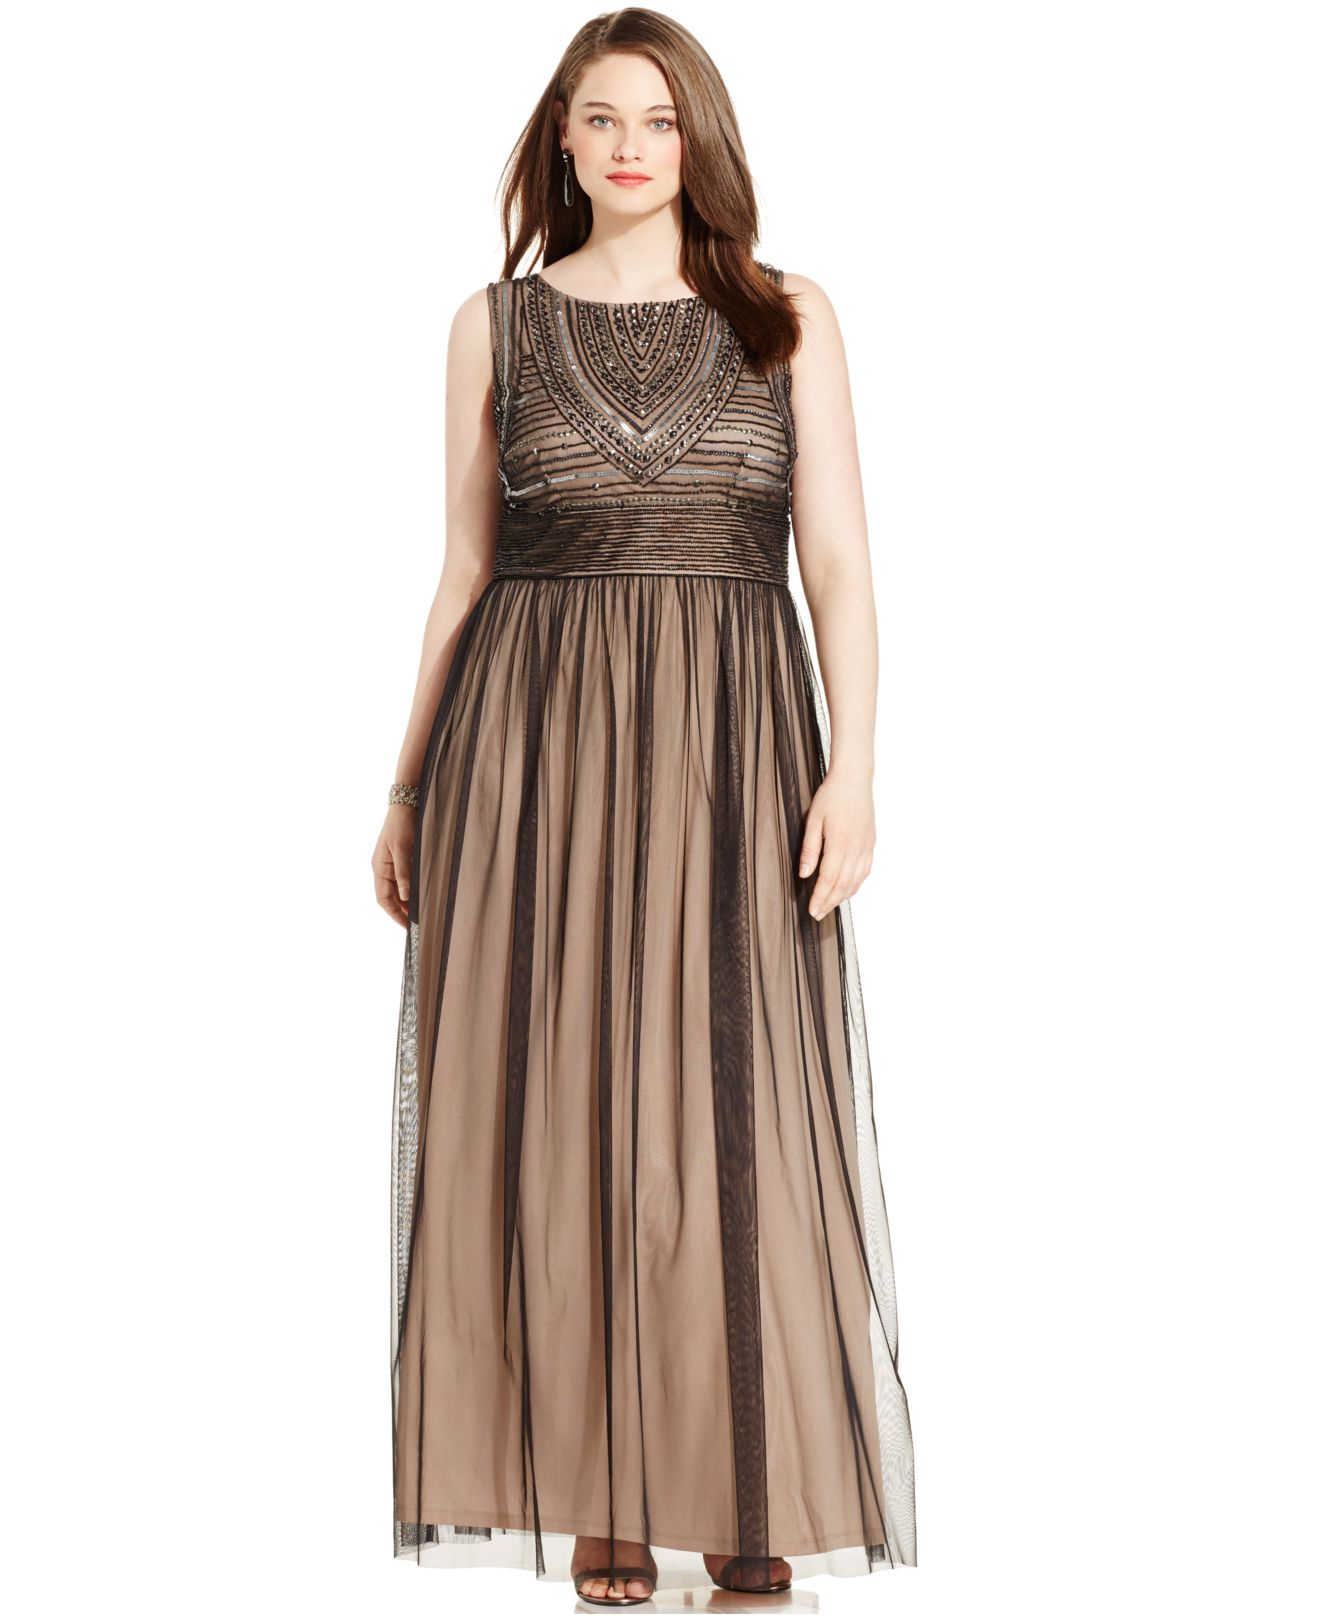 Adrianna papell Plus Size Embellished Gown in Brown | Lyst